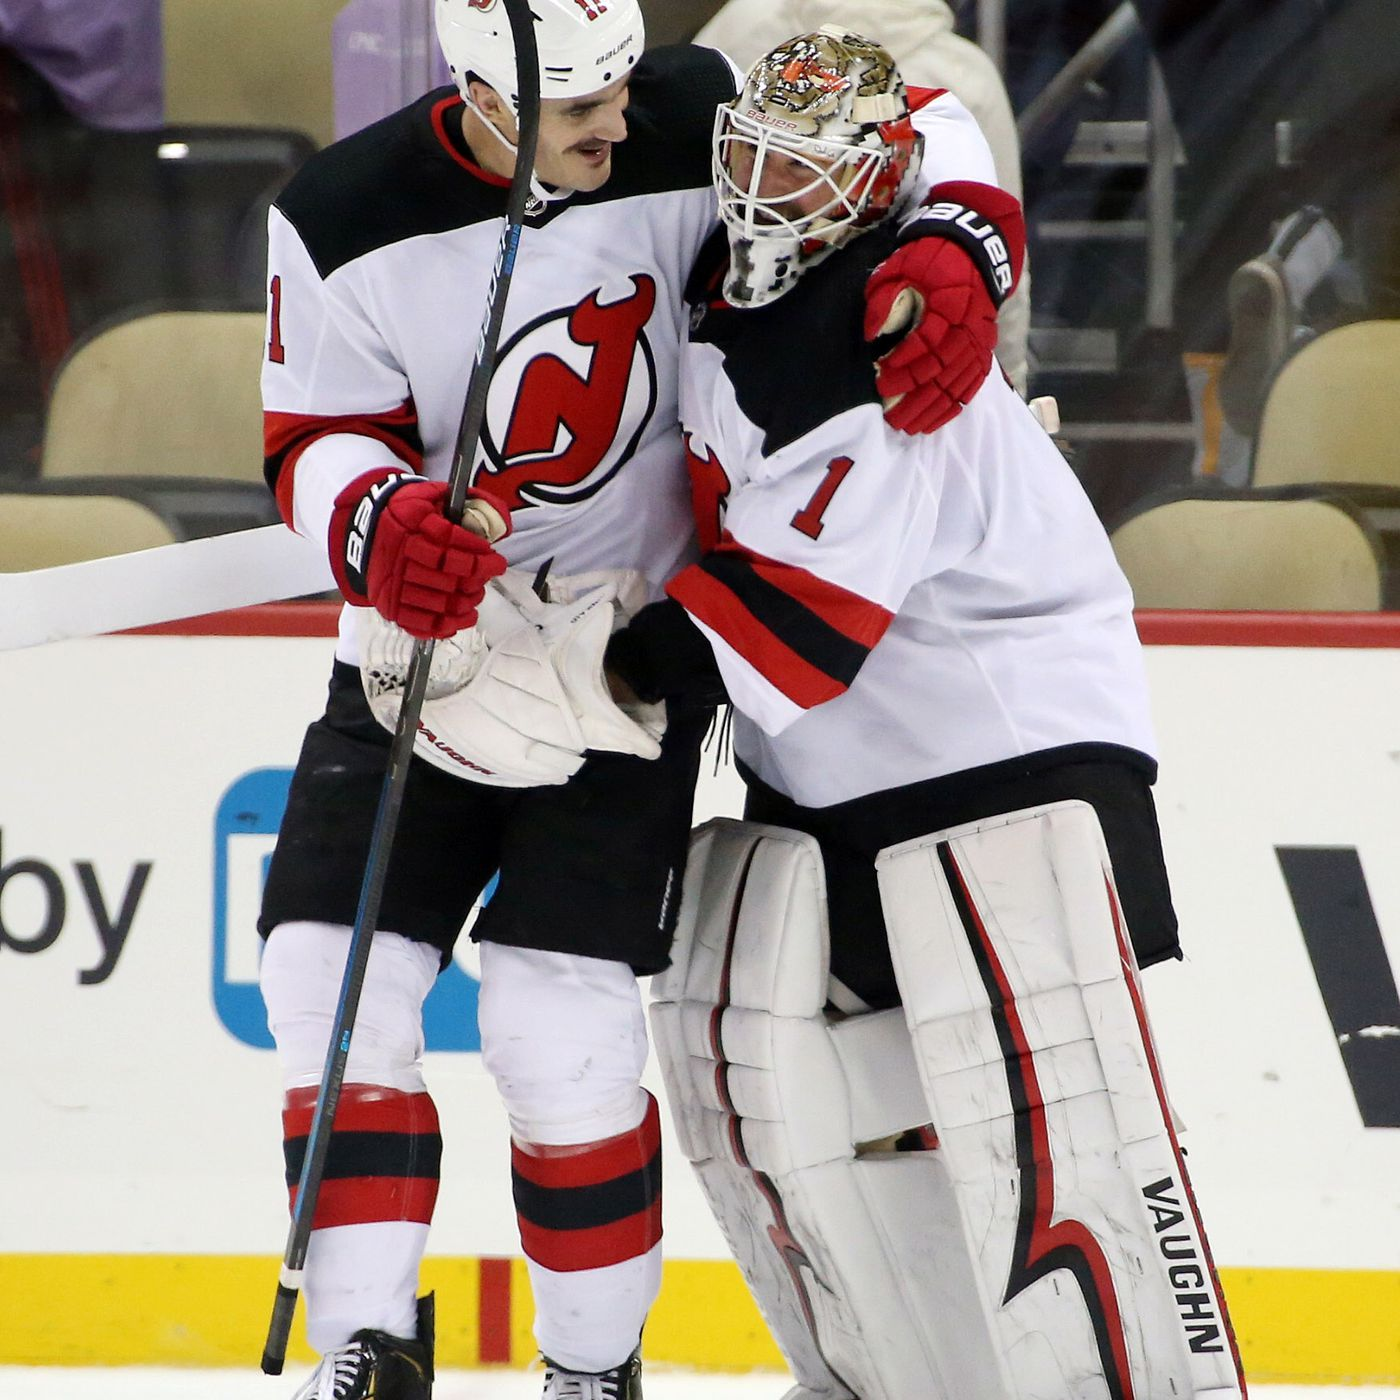 Brian Boyle s Natural Hat Trick Led New Jersey Devils Beatdown of  Pittsburgh Penguins - All About The Jersey 49f60e65f